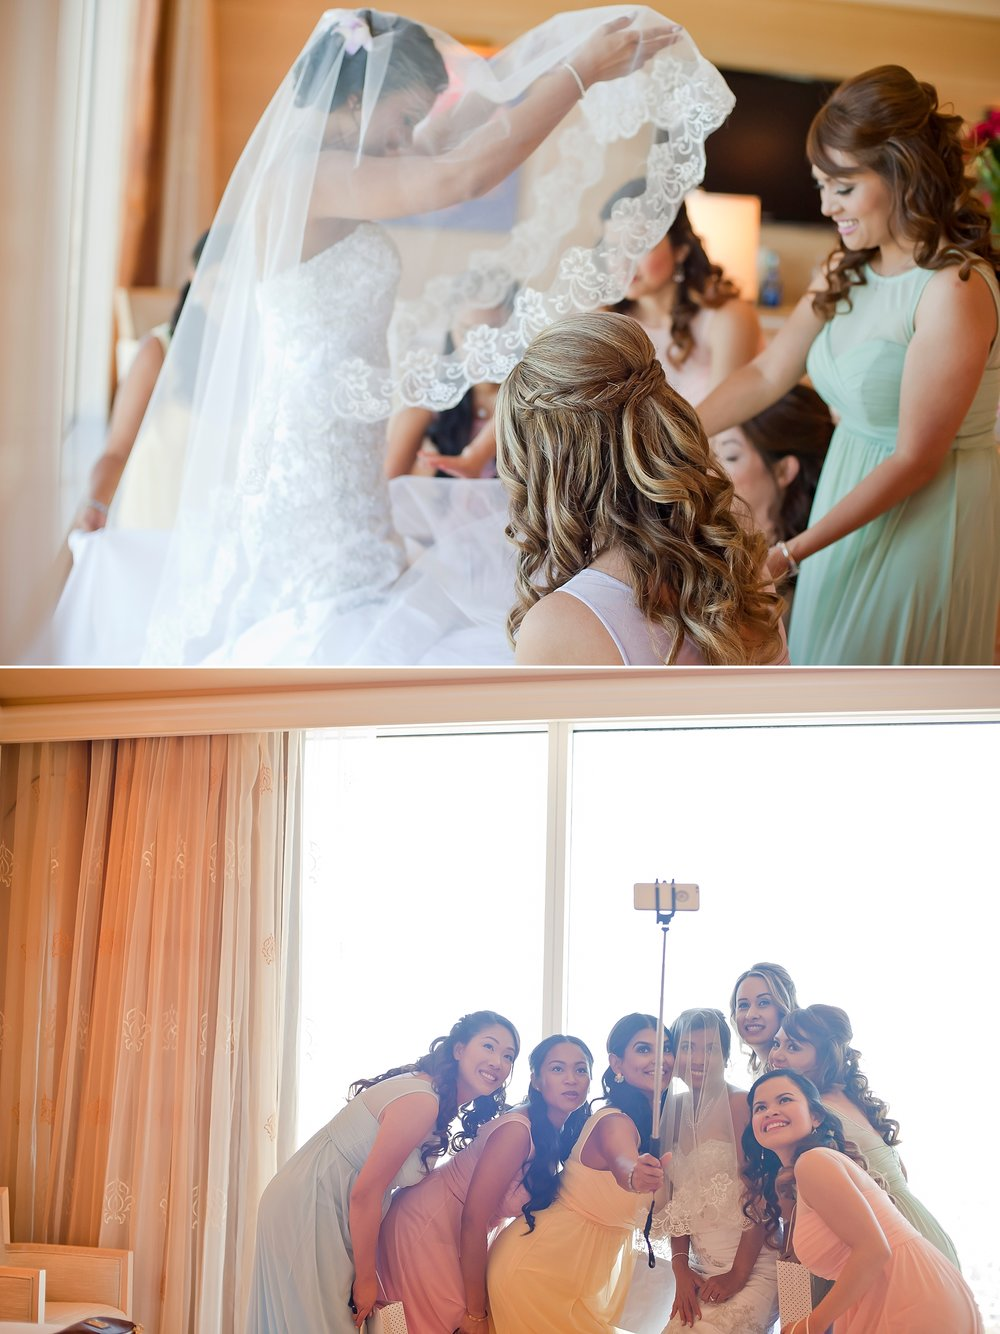 KMA_Center_Encore_SLS_Modern_Las_Vegas_Wedding-022.jpg